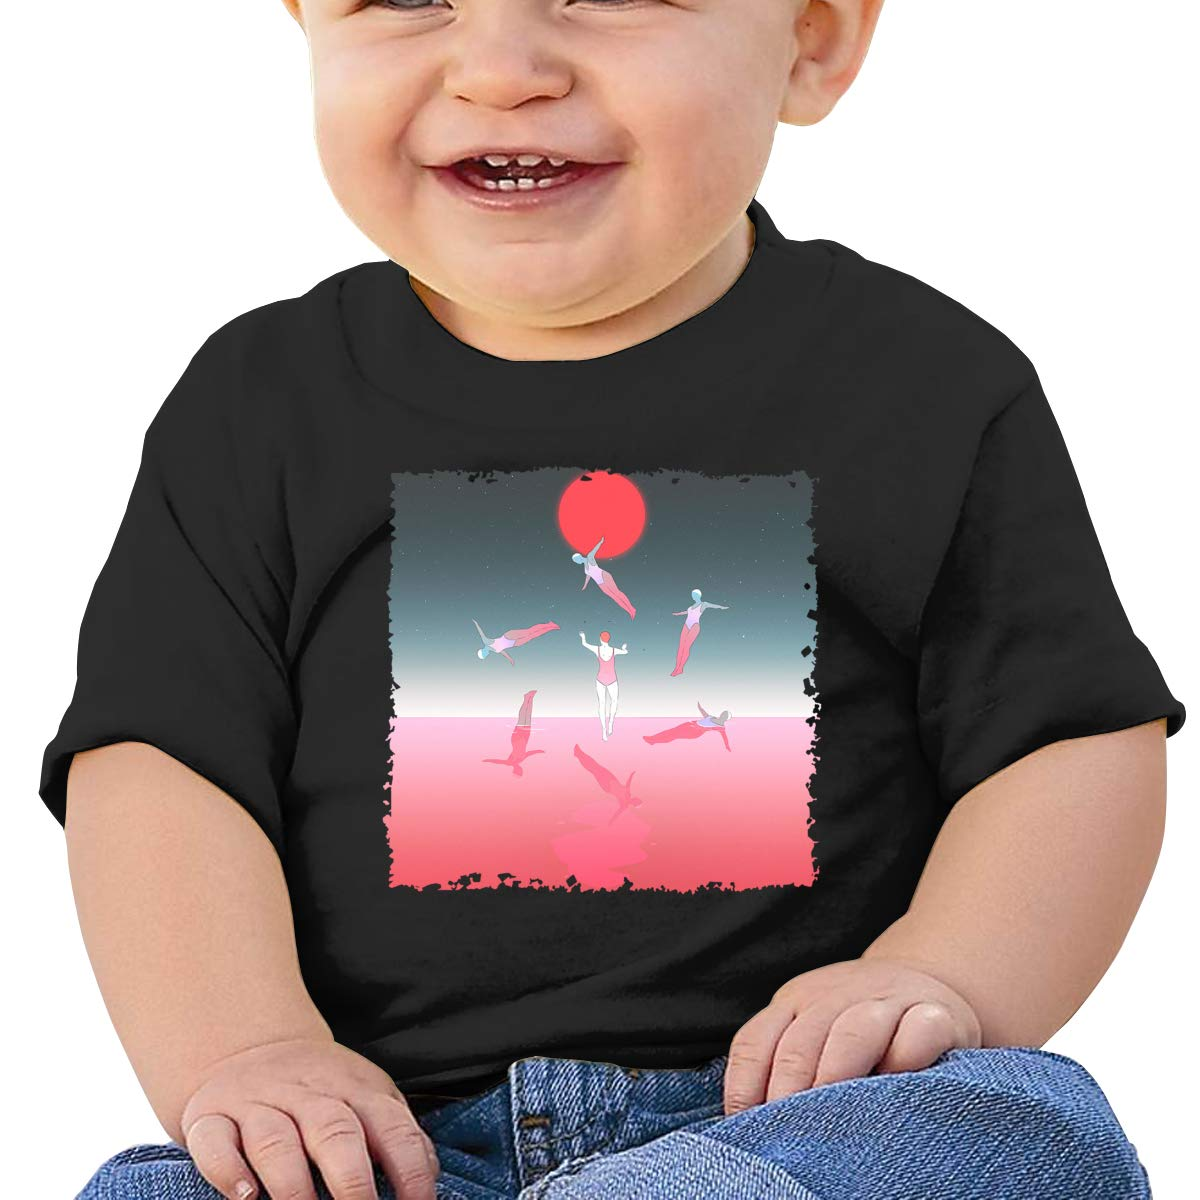 Baby Dirty Heads Shirts Tee Toddler Cotton Shirt